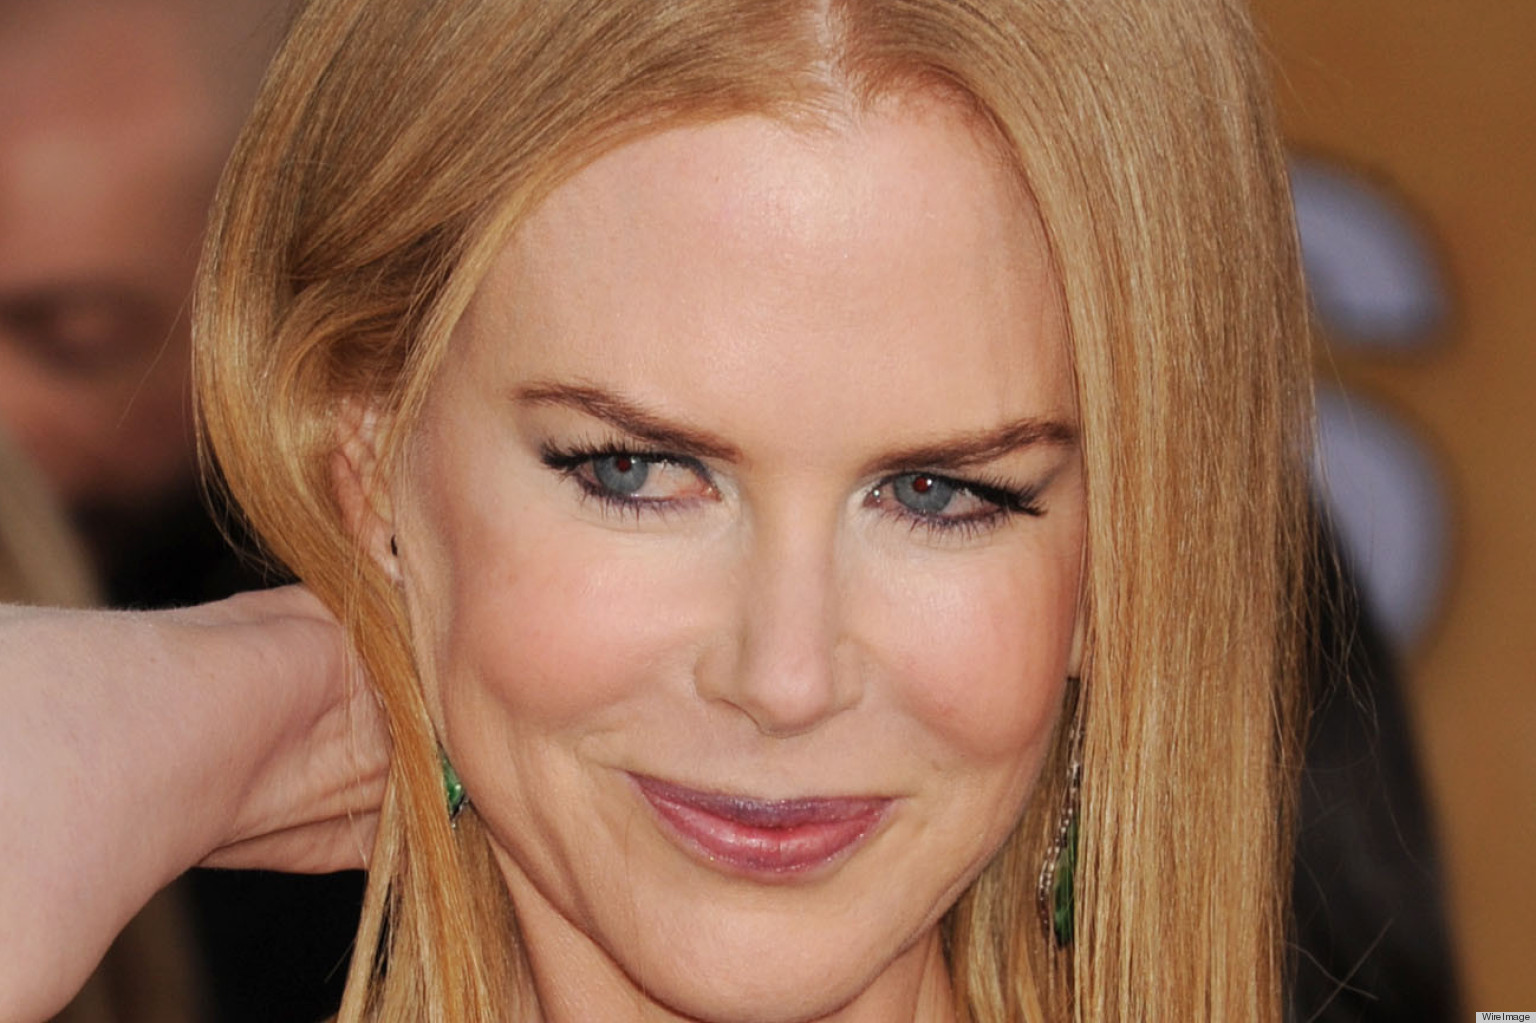 Nicole Kidman Botox Unfortunate Move But Now Can